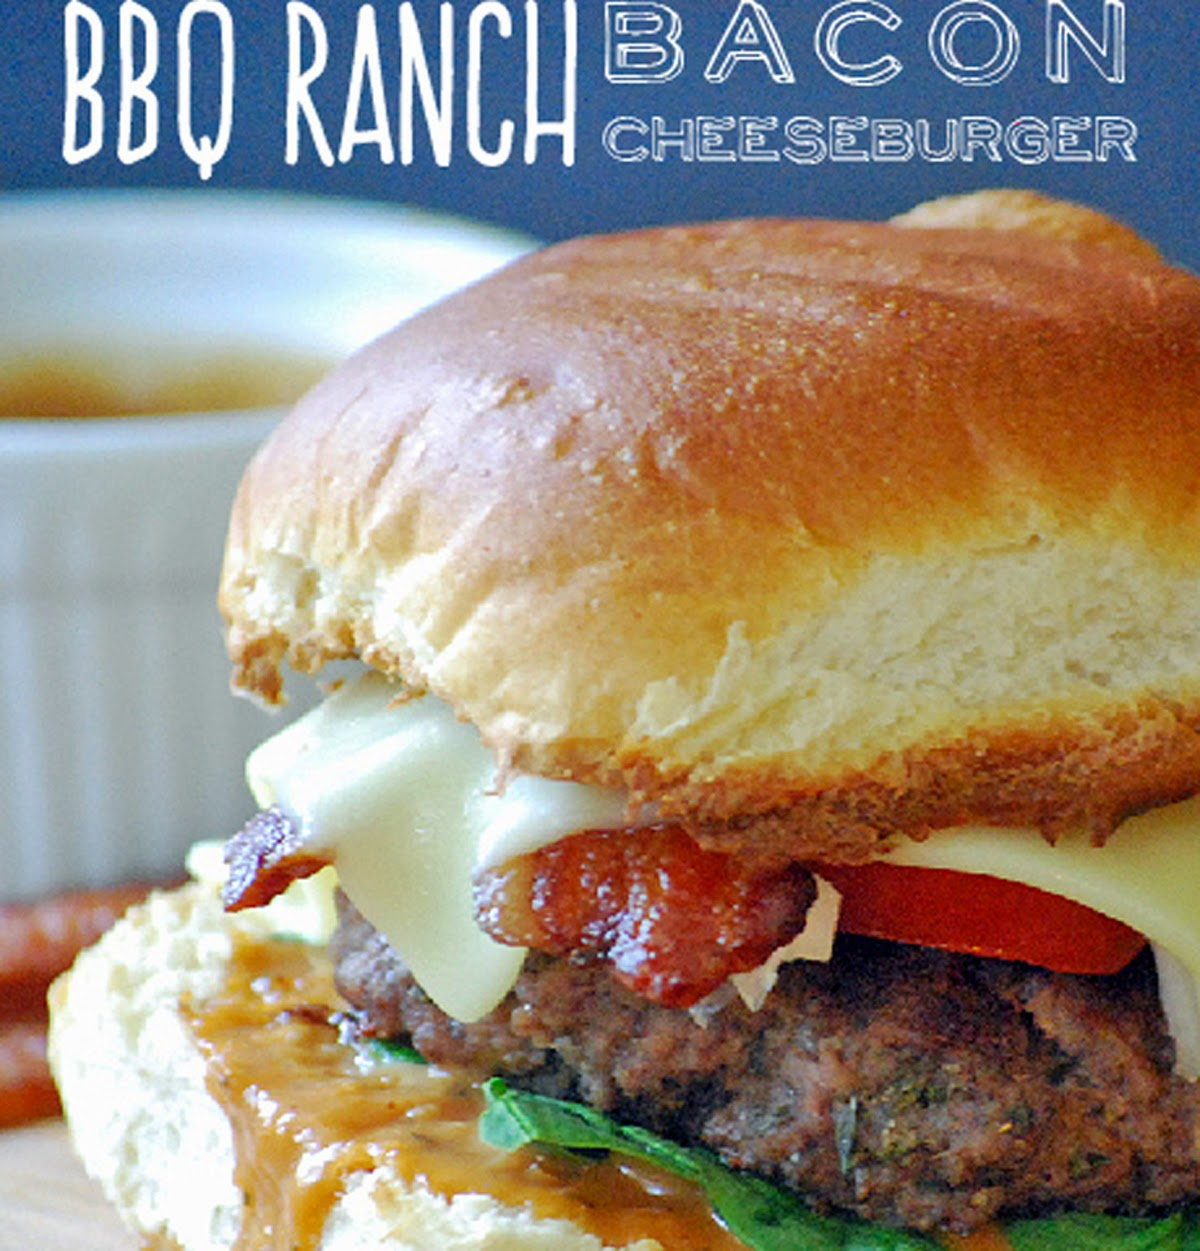 BBQ Ranch Bacon Cheeseburger | by Life Tastes Good